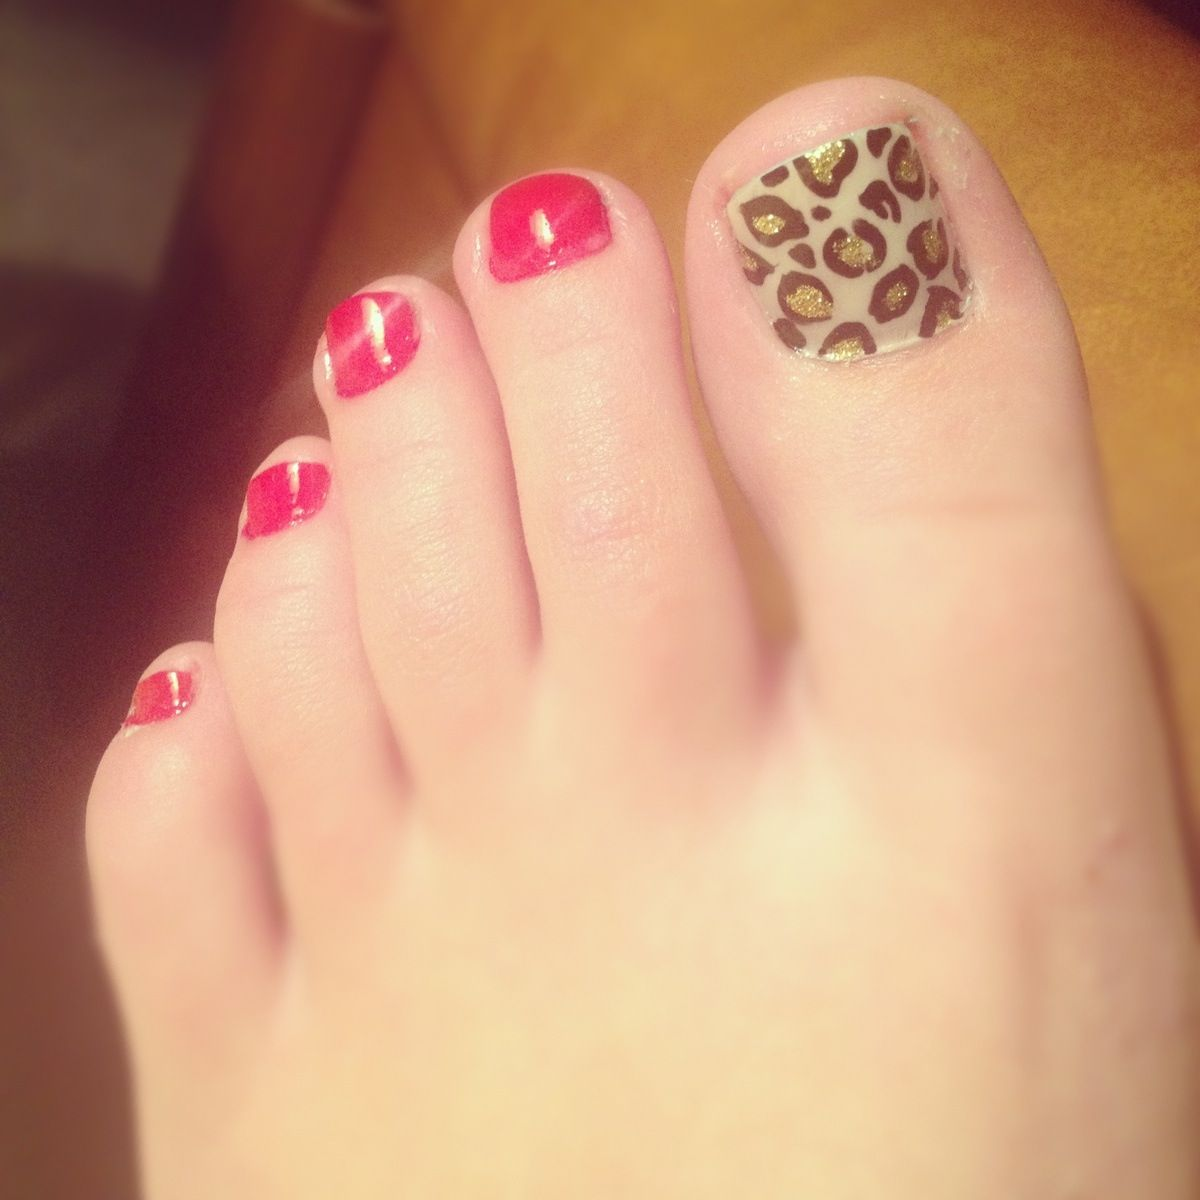 Cheetah Print Toes Toe Nails Nails Fun Nails